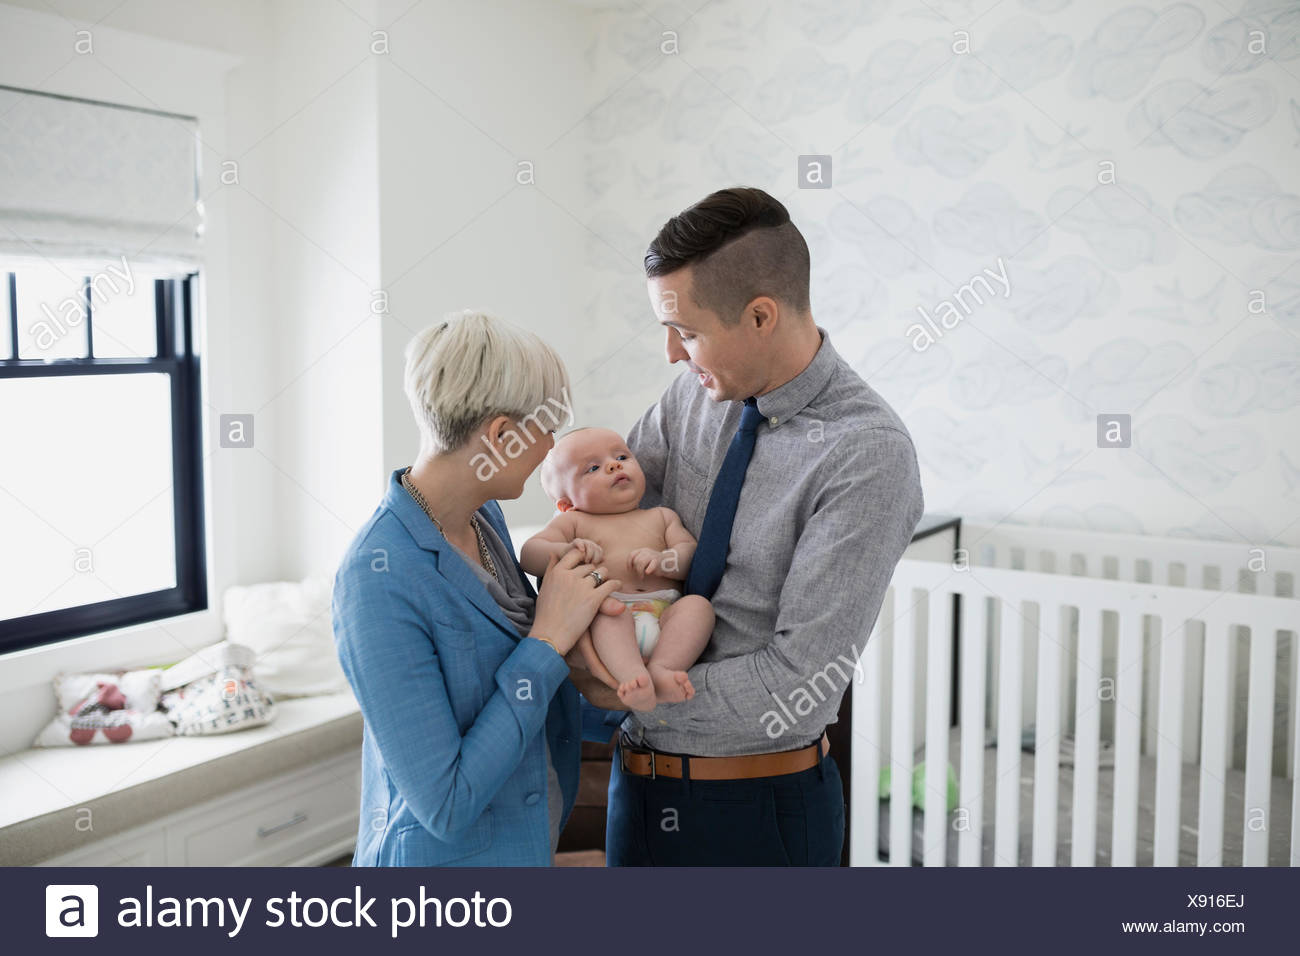 Parents holding baby son in nursery - Stock Image